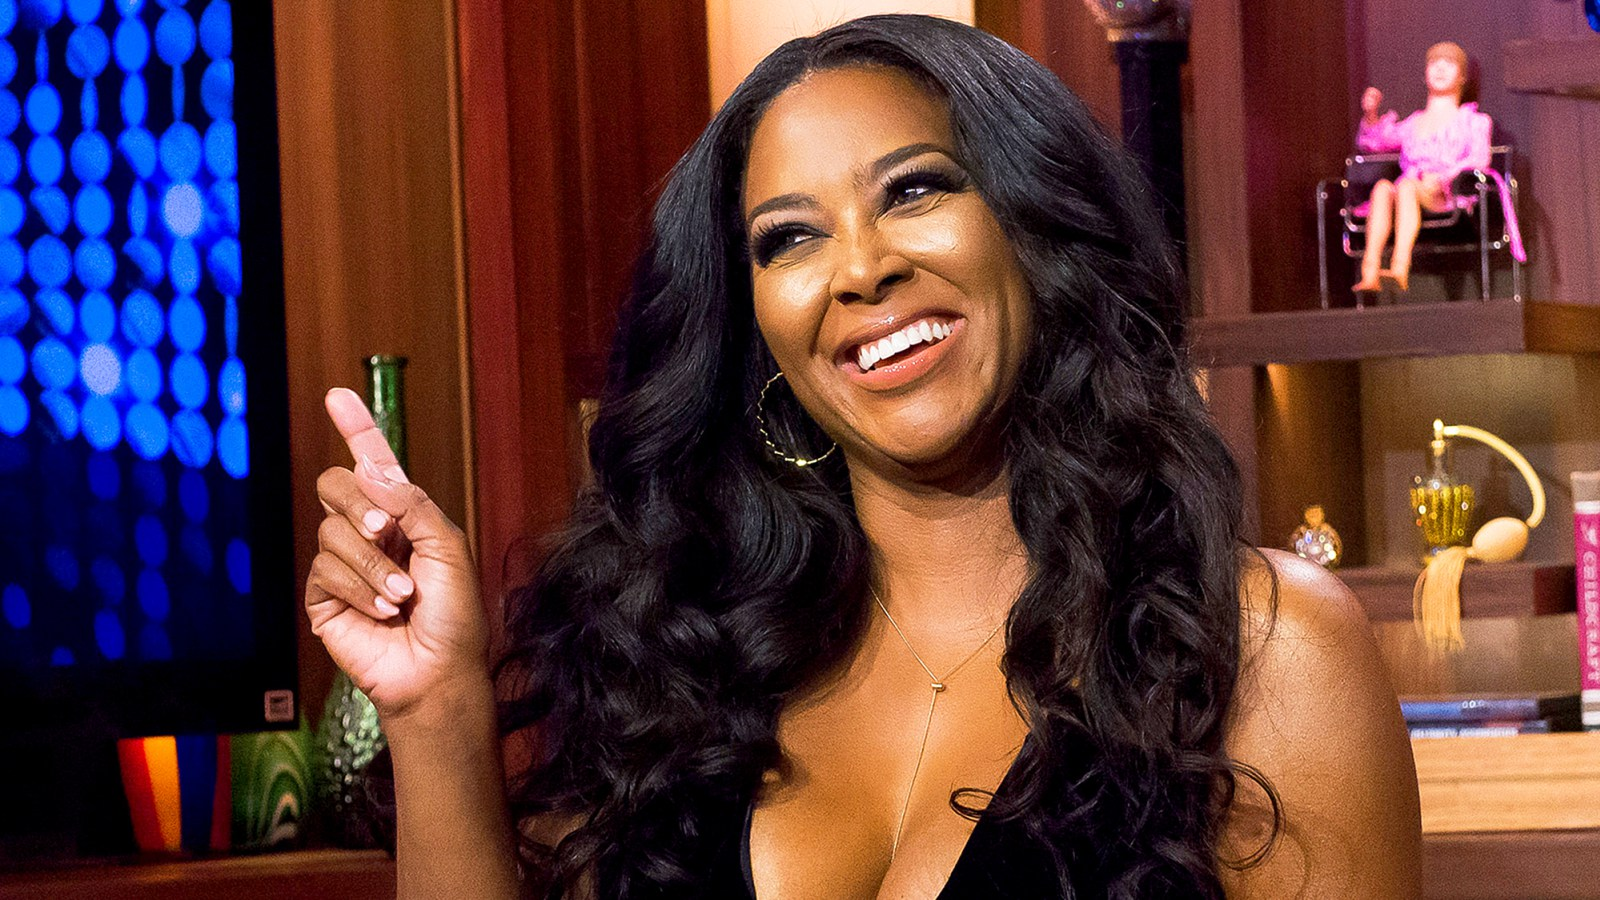 Kenya Moore: Pregnant Realty TV Star Says She Weighs Over 200 Lbs